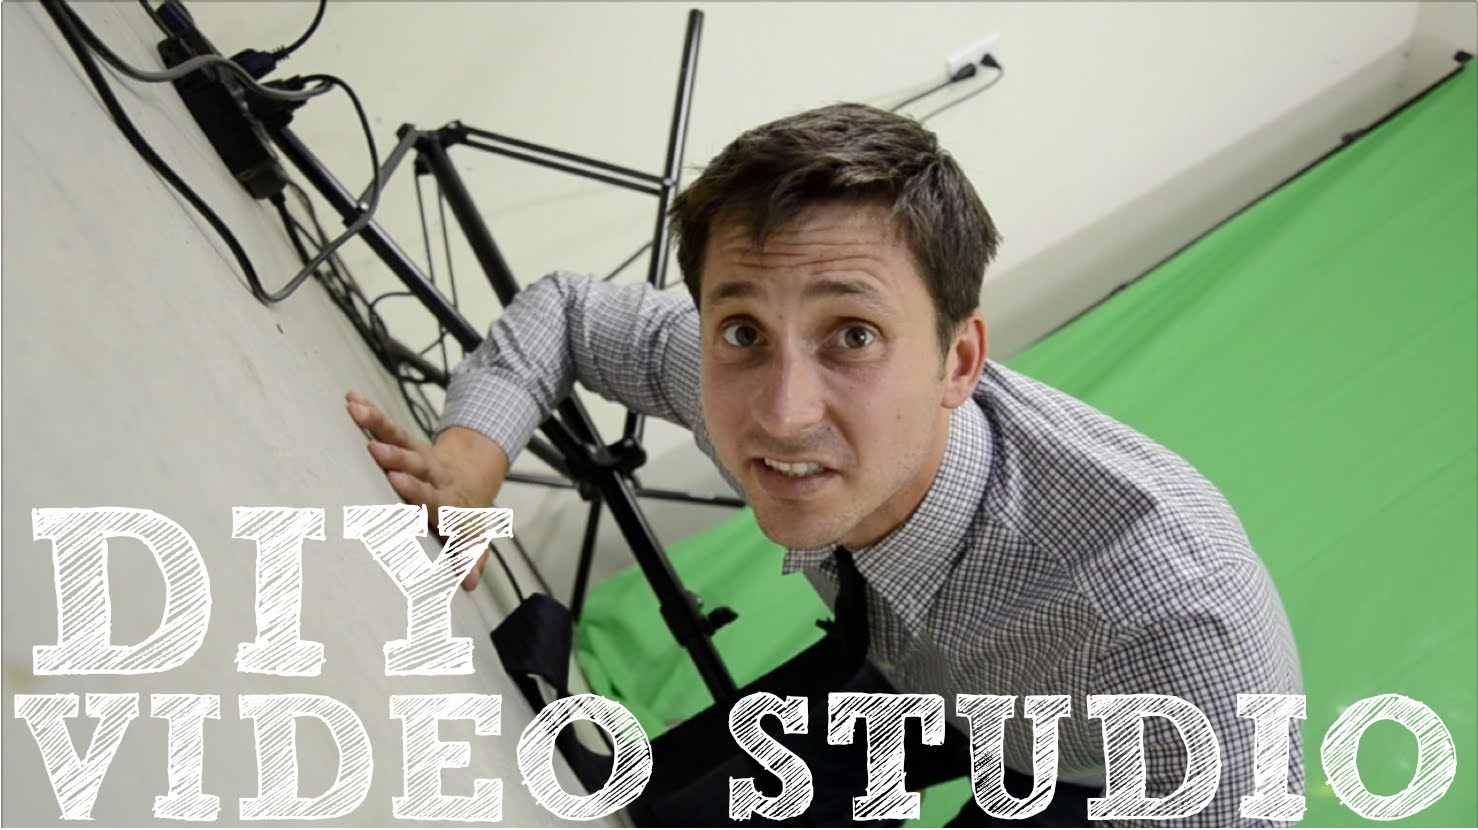 DIY Video Studio – How to Set Up Your Home Film Studio